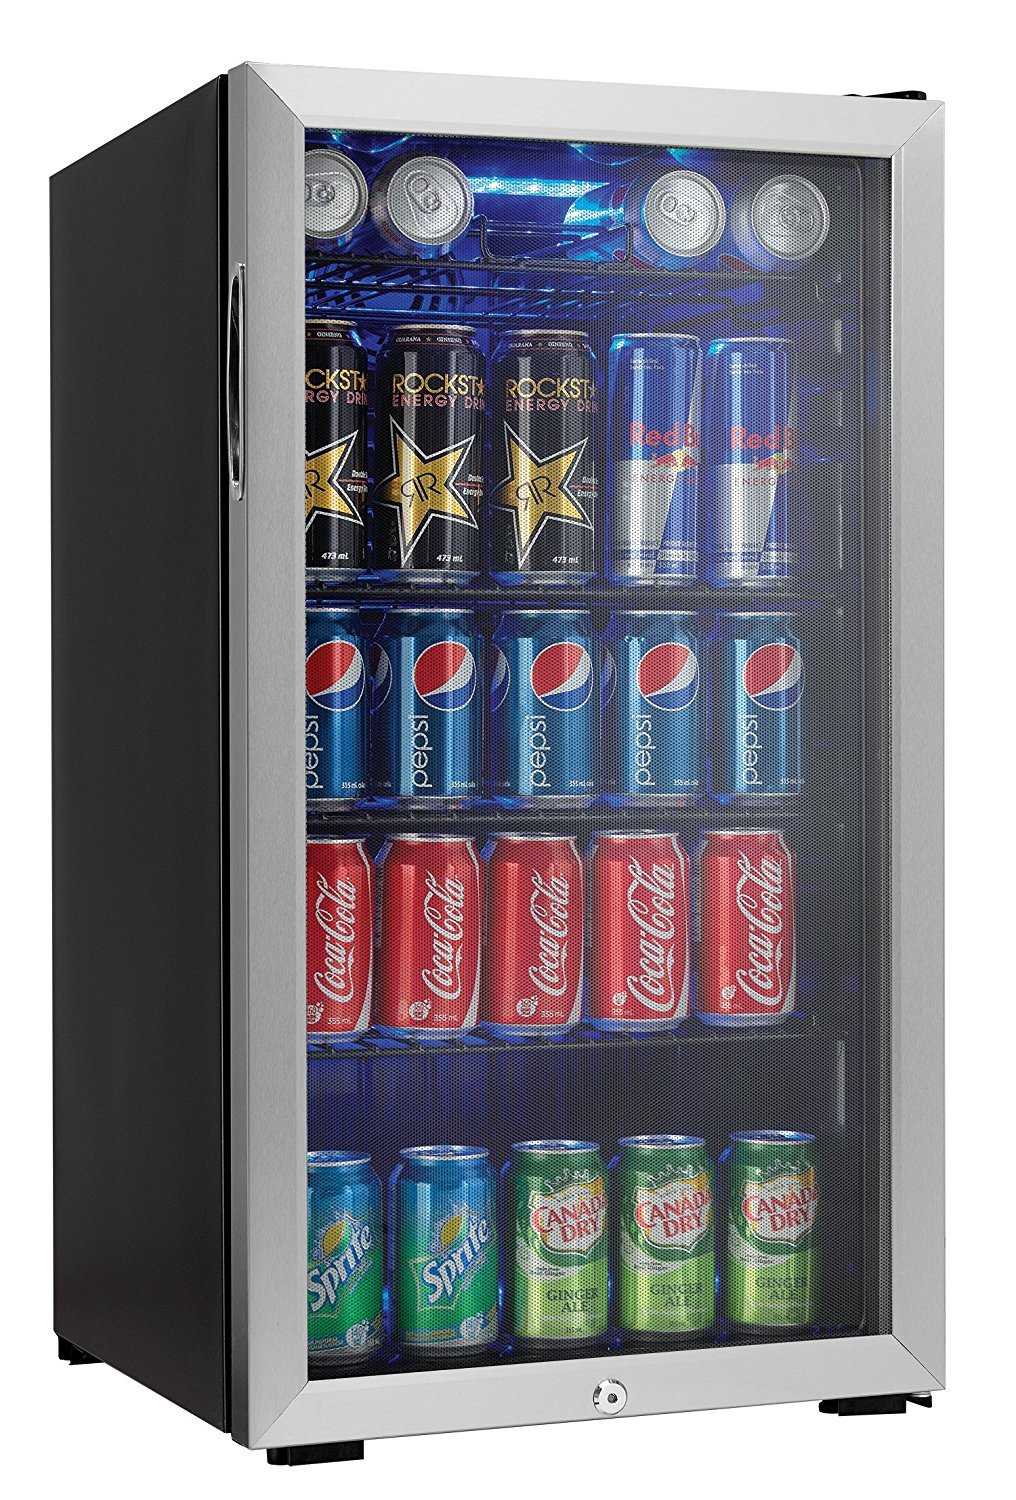 Danby 120 Can Beverage Center, Stainless Steel DBC120BLS 81RVN8 2B3ZDL